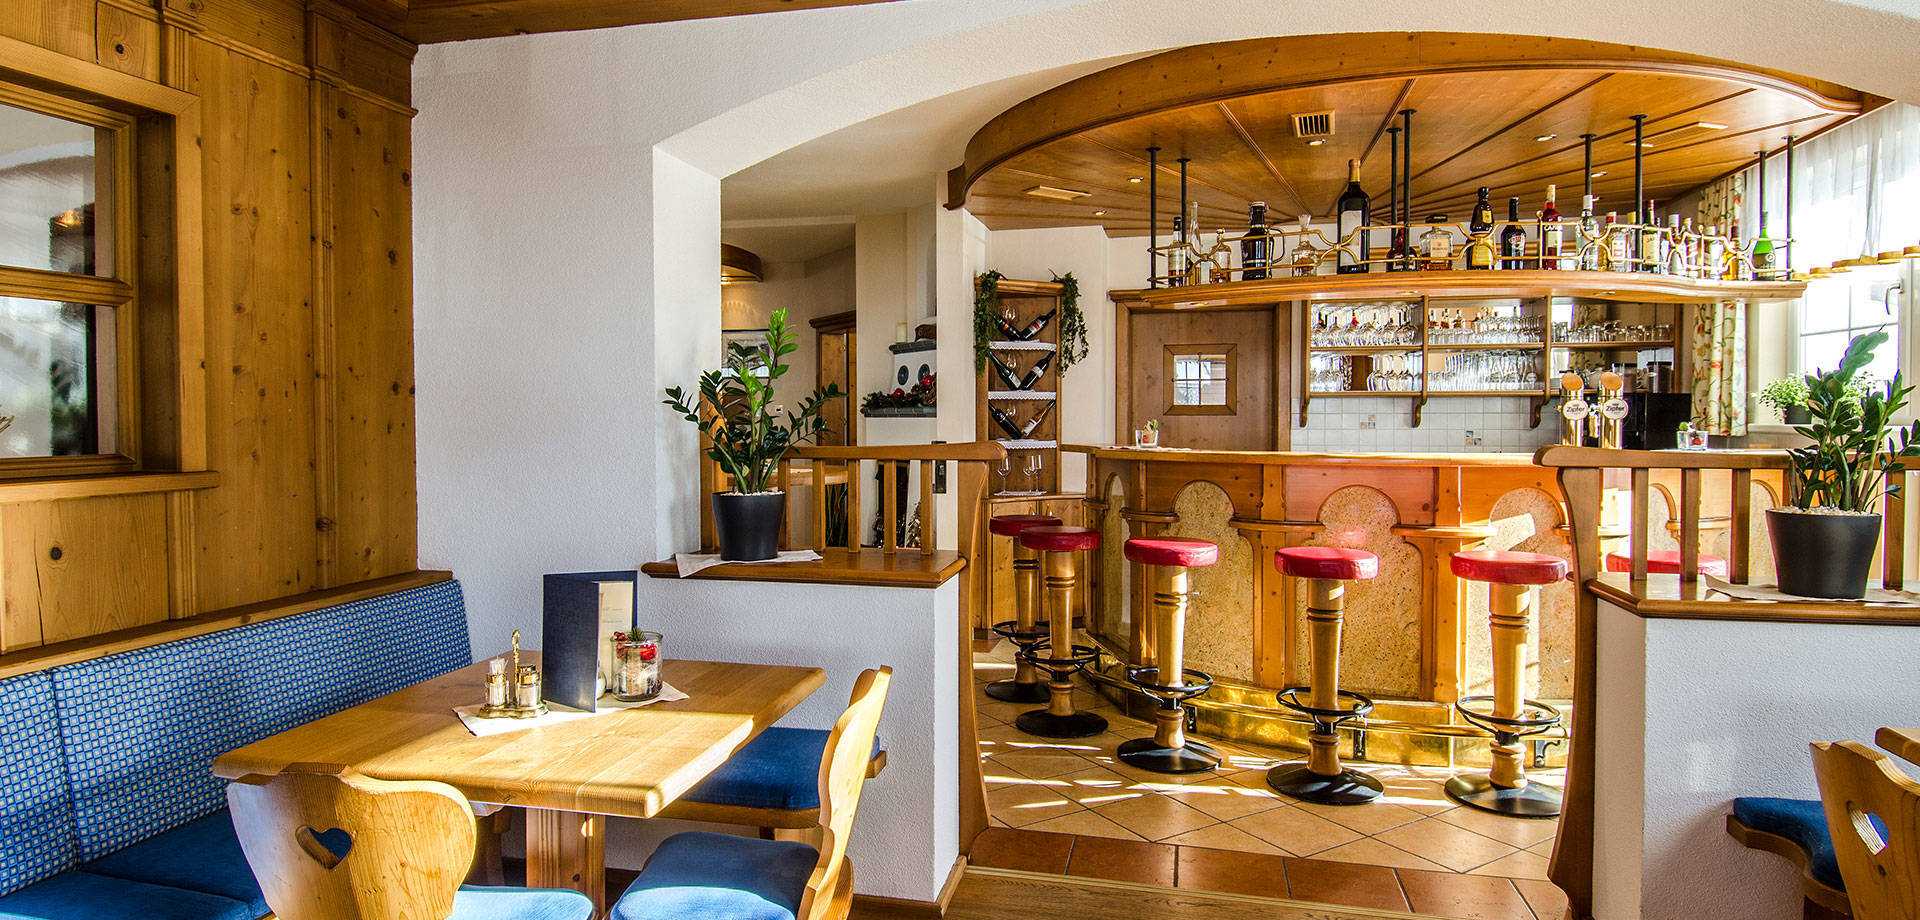 [Translate to English:] Tagesbar im 4-Sterne Hotel Daniel in Ischgl daytime bar Meeting Place Snack Bar